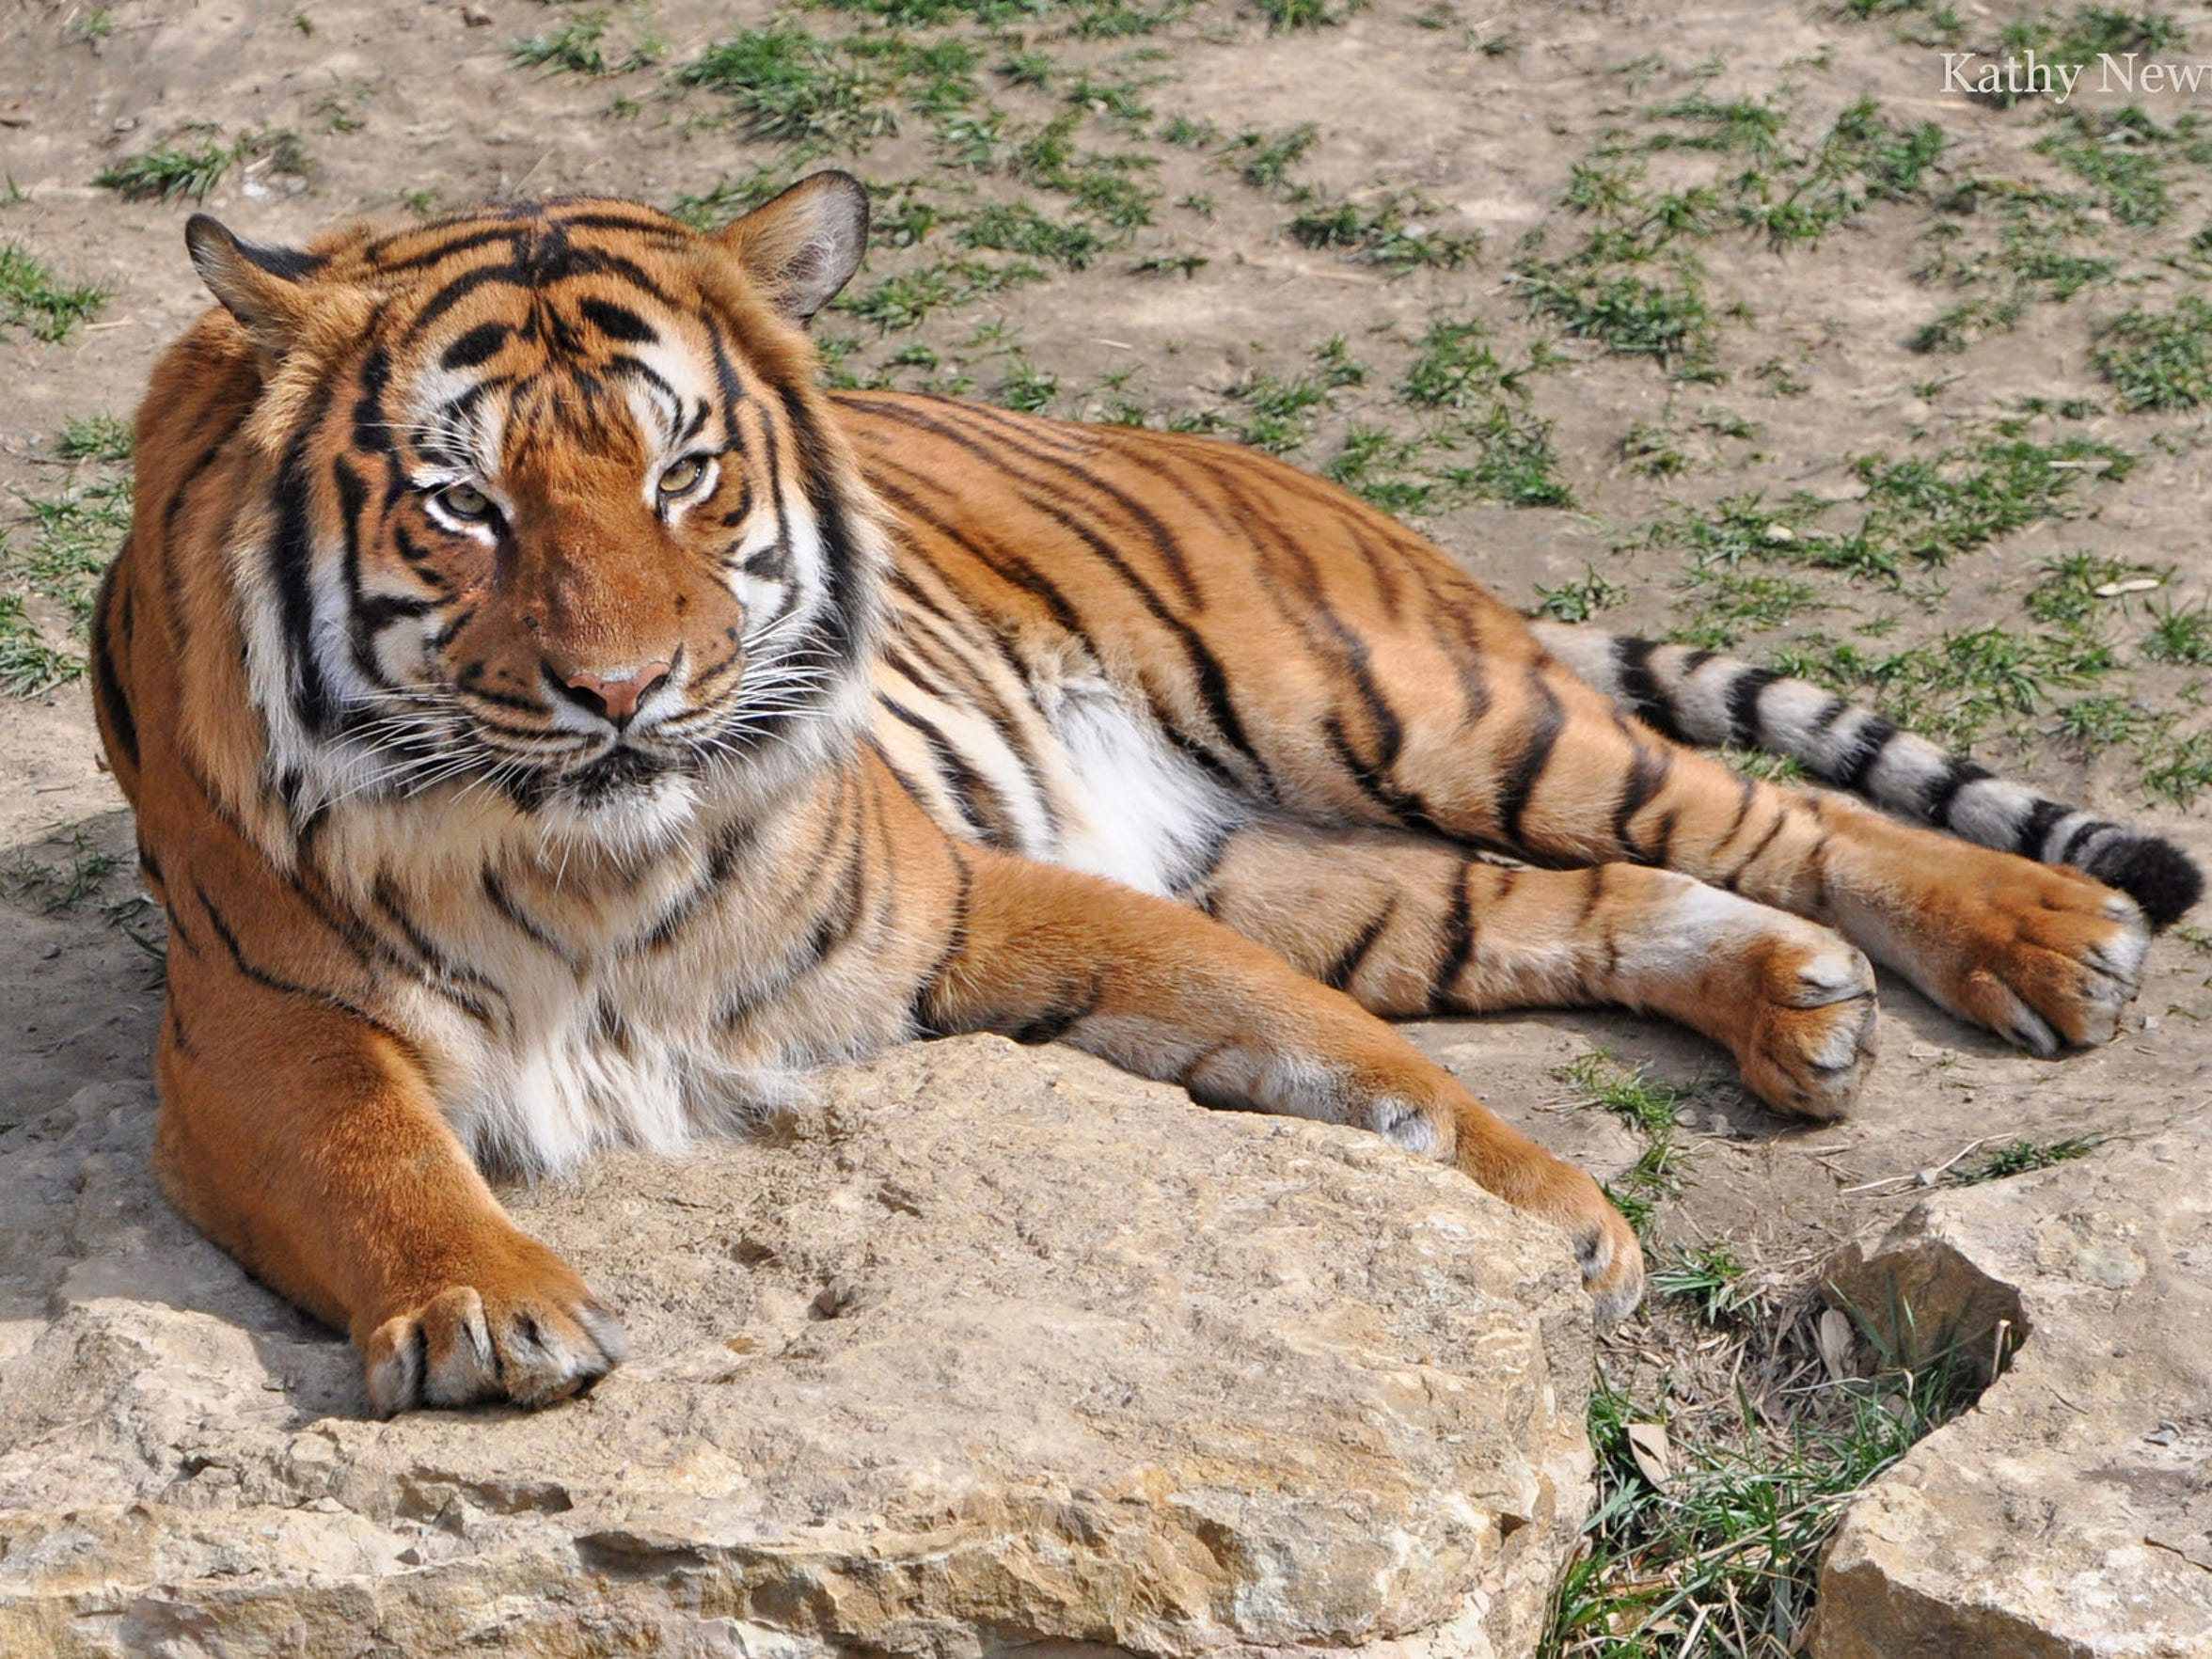 Malayan tiger brothers, Taj and Who Dey, pictured here, were recently moved due to an Association of Zoos and Aquariums breeding recommendation that will bring a male and female pair to the Cincinnati Zoo & Botanical Garden in the spring.